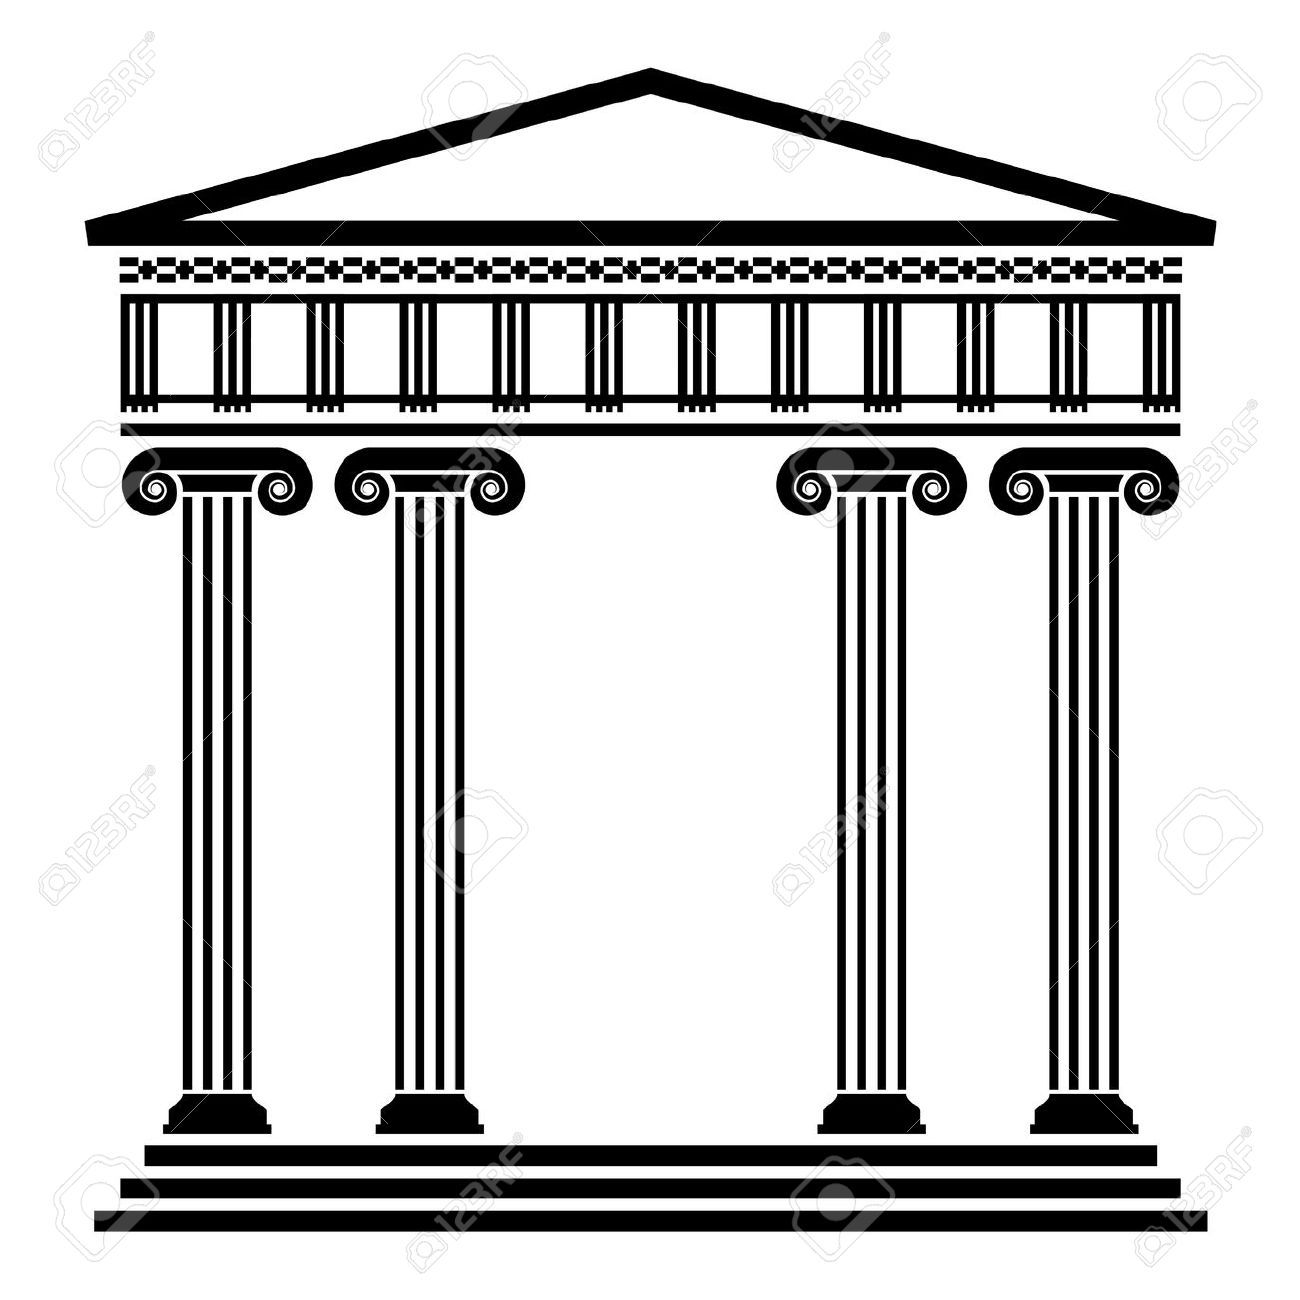 Rome clipart greek pillar. Vector ancient architecture with